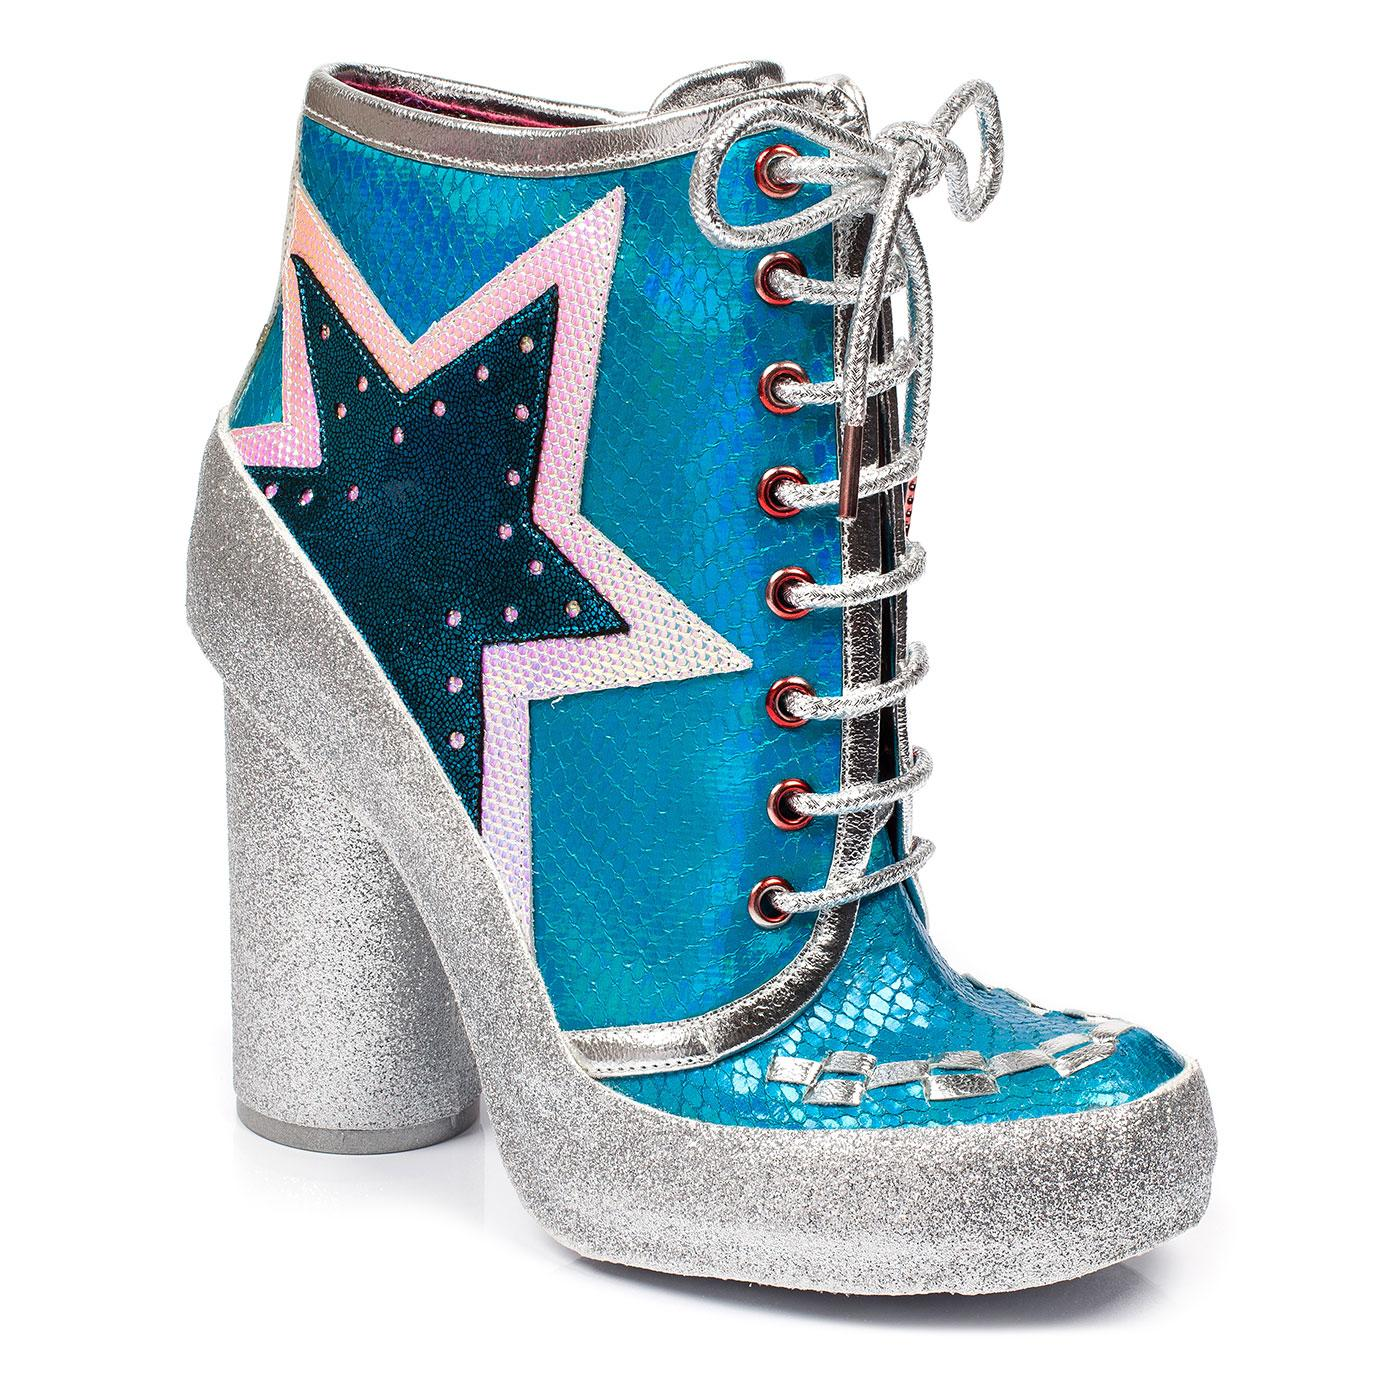 Milovat IRREGULAR CHOICE 70s Retro Glitter Boots